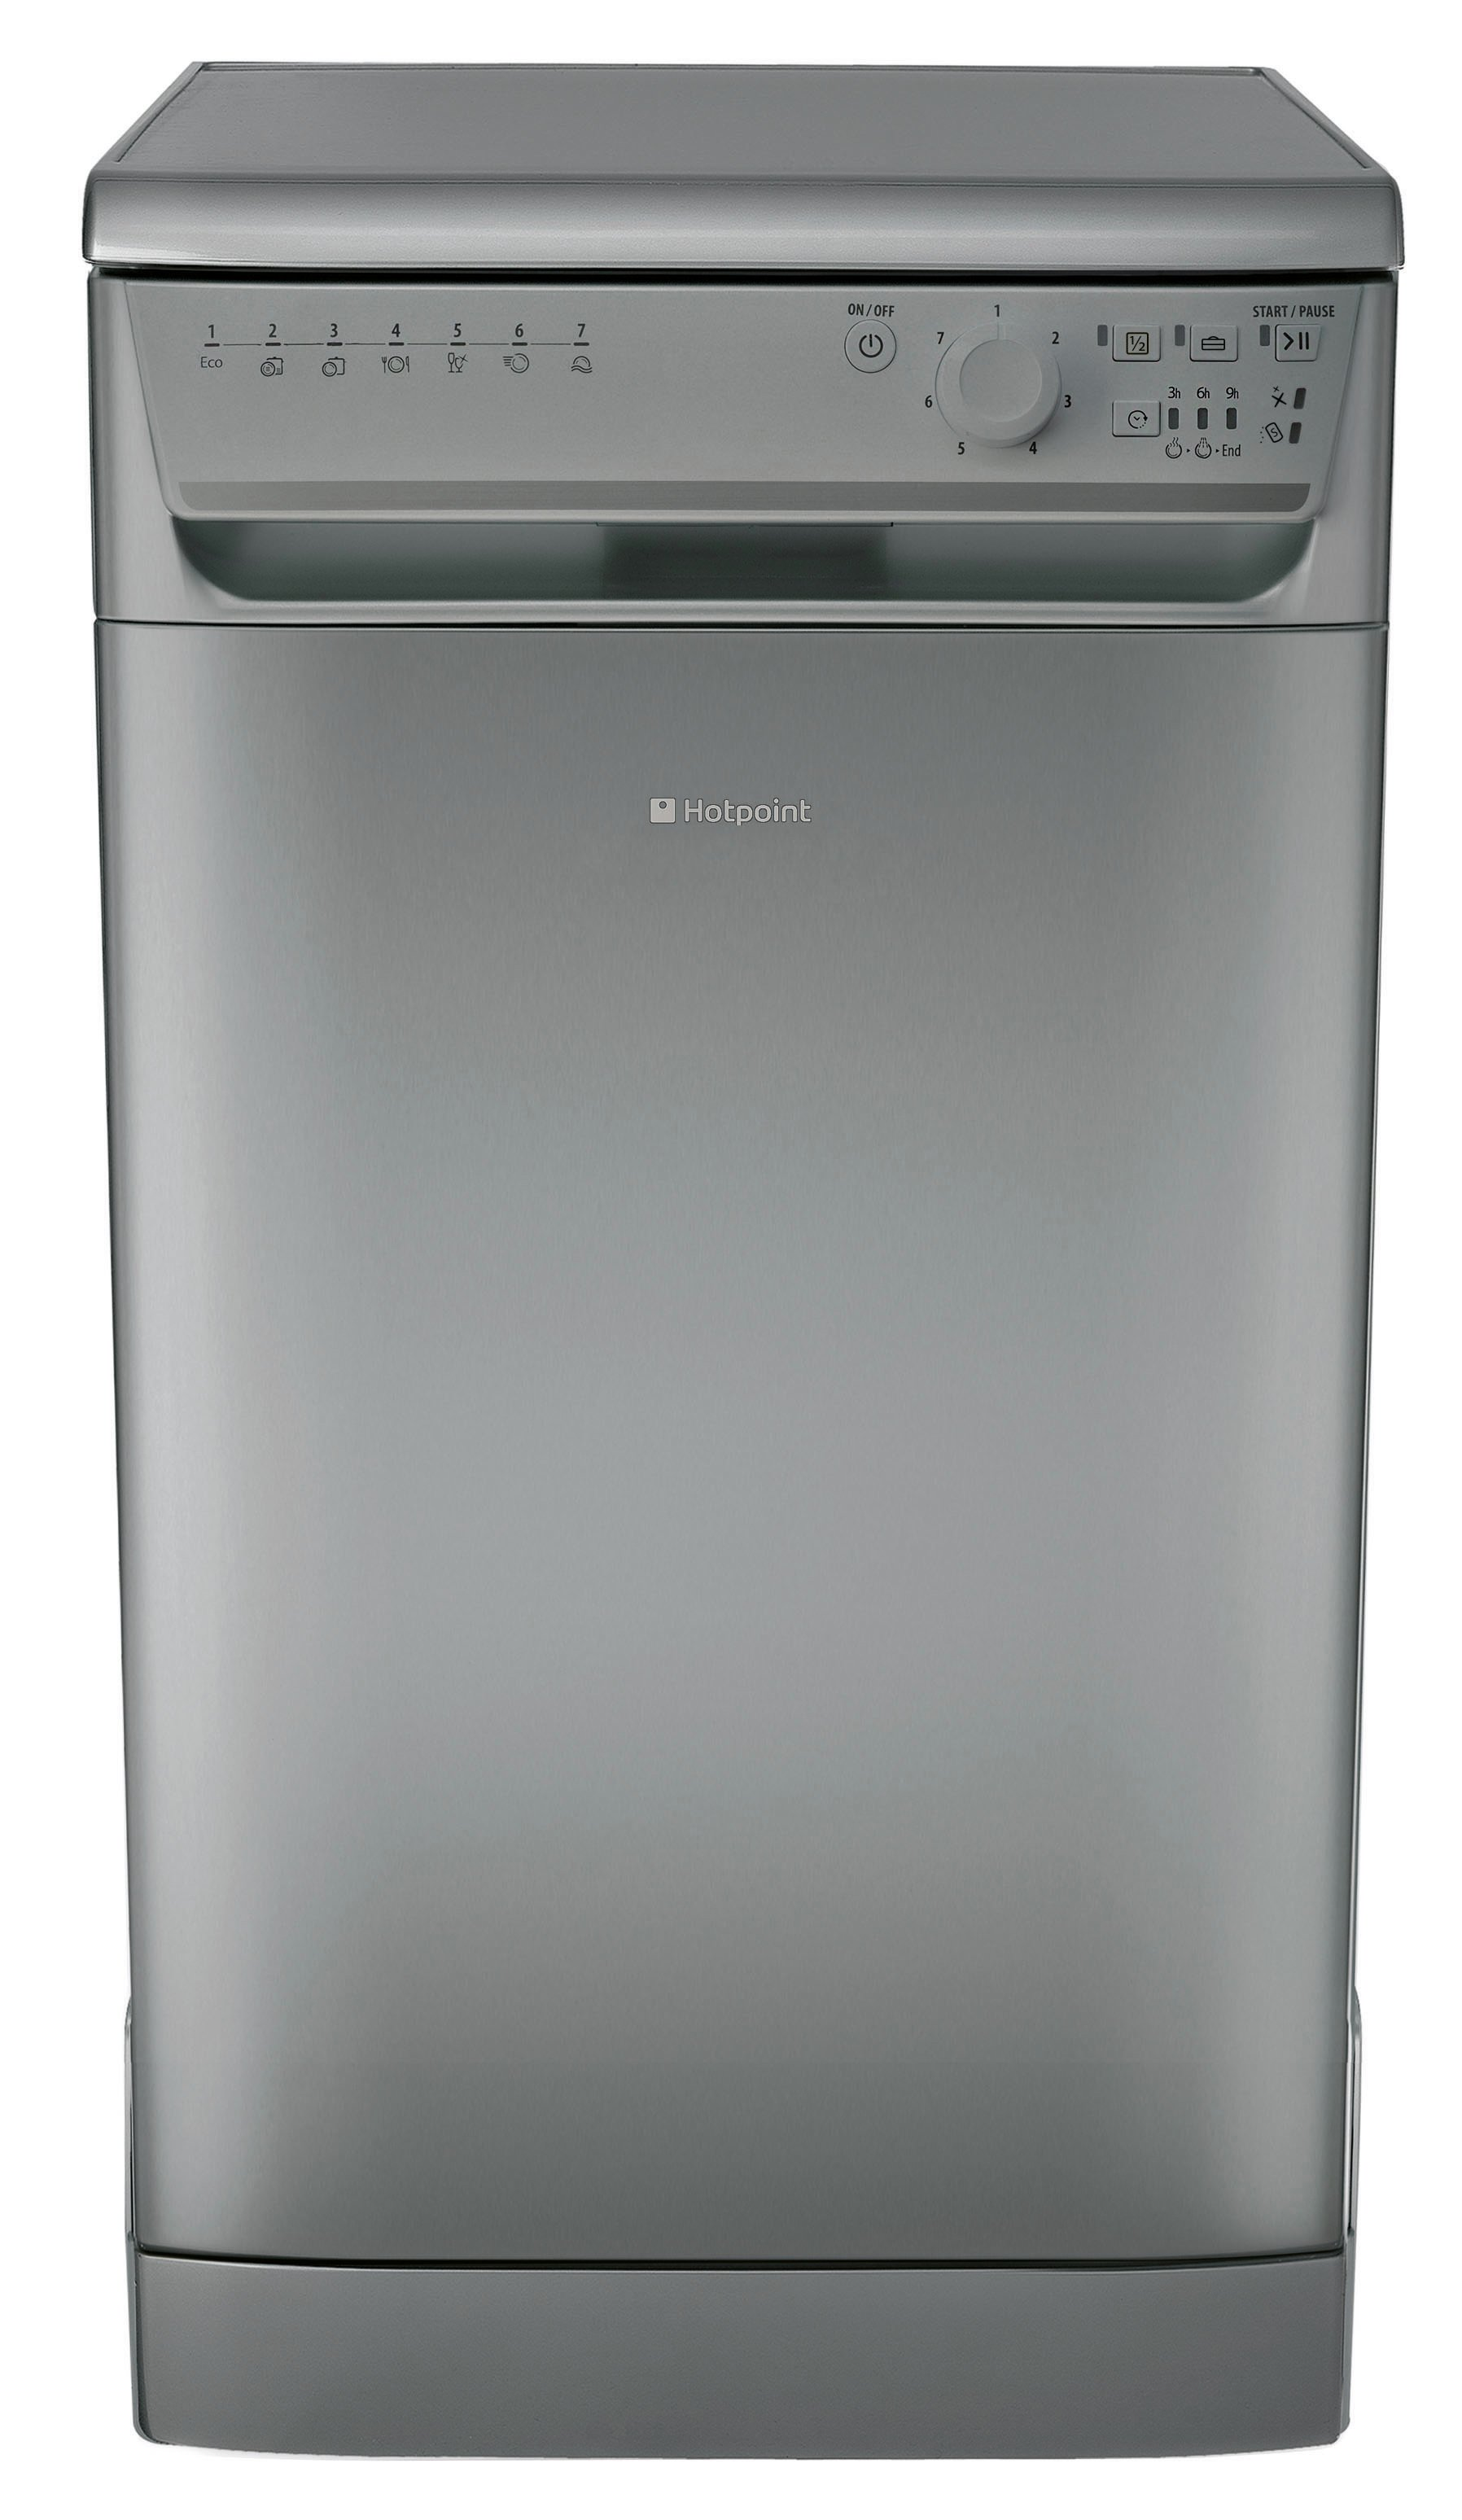 hotpoint aquarius sial11010g slimline dishwasher. Black Bedroom Furniture Sets. Home Design Ideas